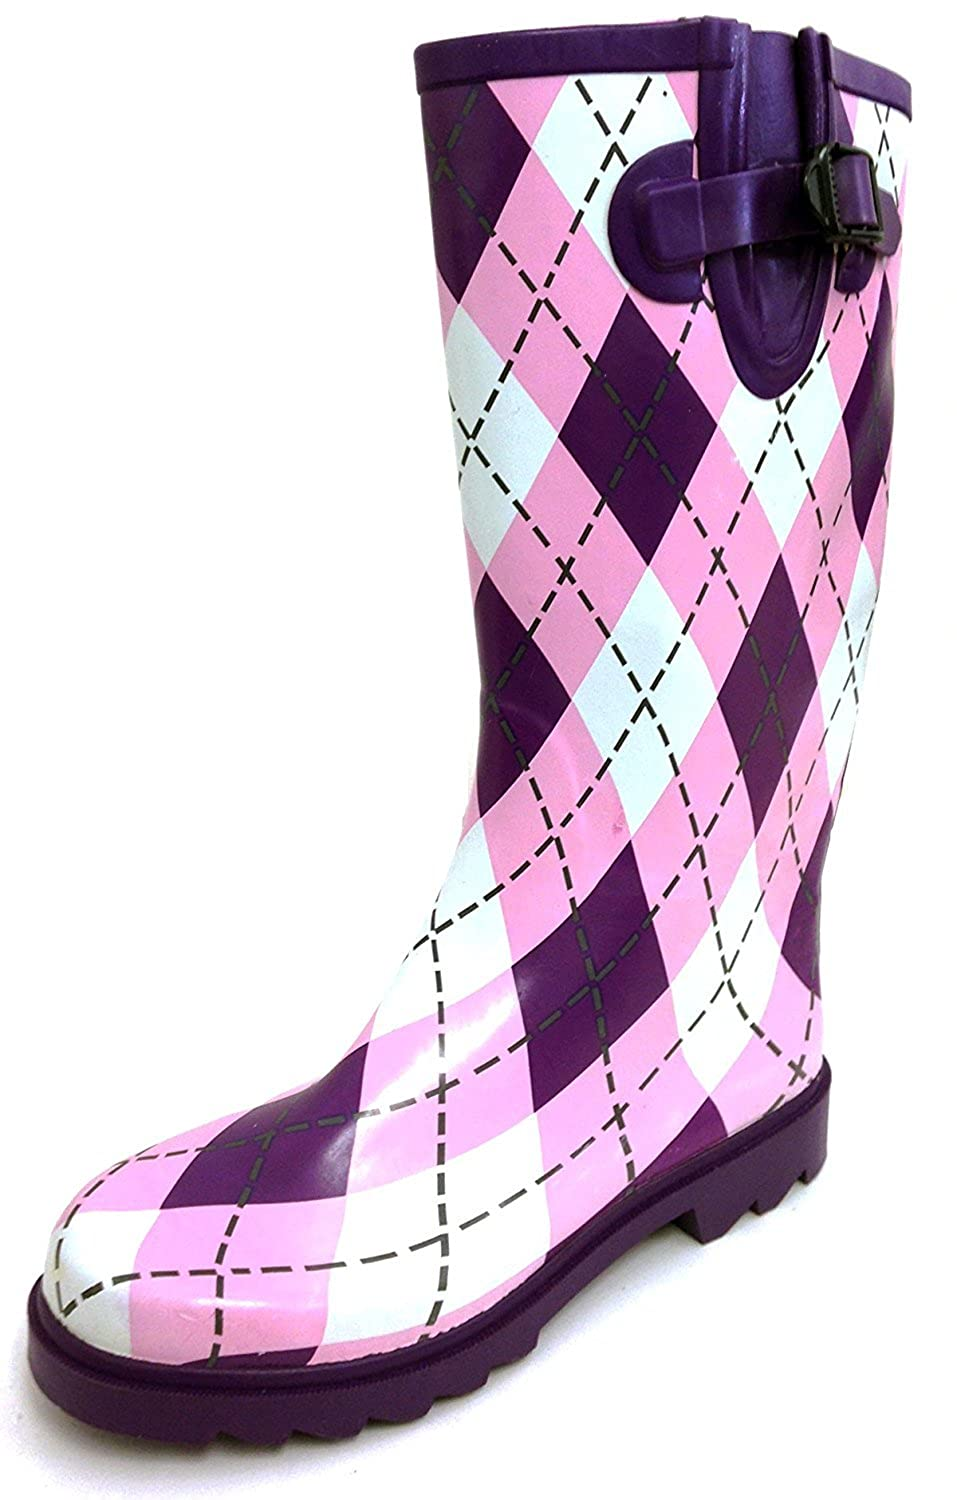 Purple & Pink Argyle Plaid G4U Women's Rain Boots Multiple Styles color Mid Calf Wellies Buckle Fashion Rubber Knee High Snow shoes